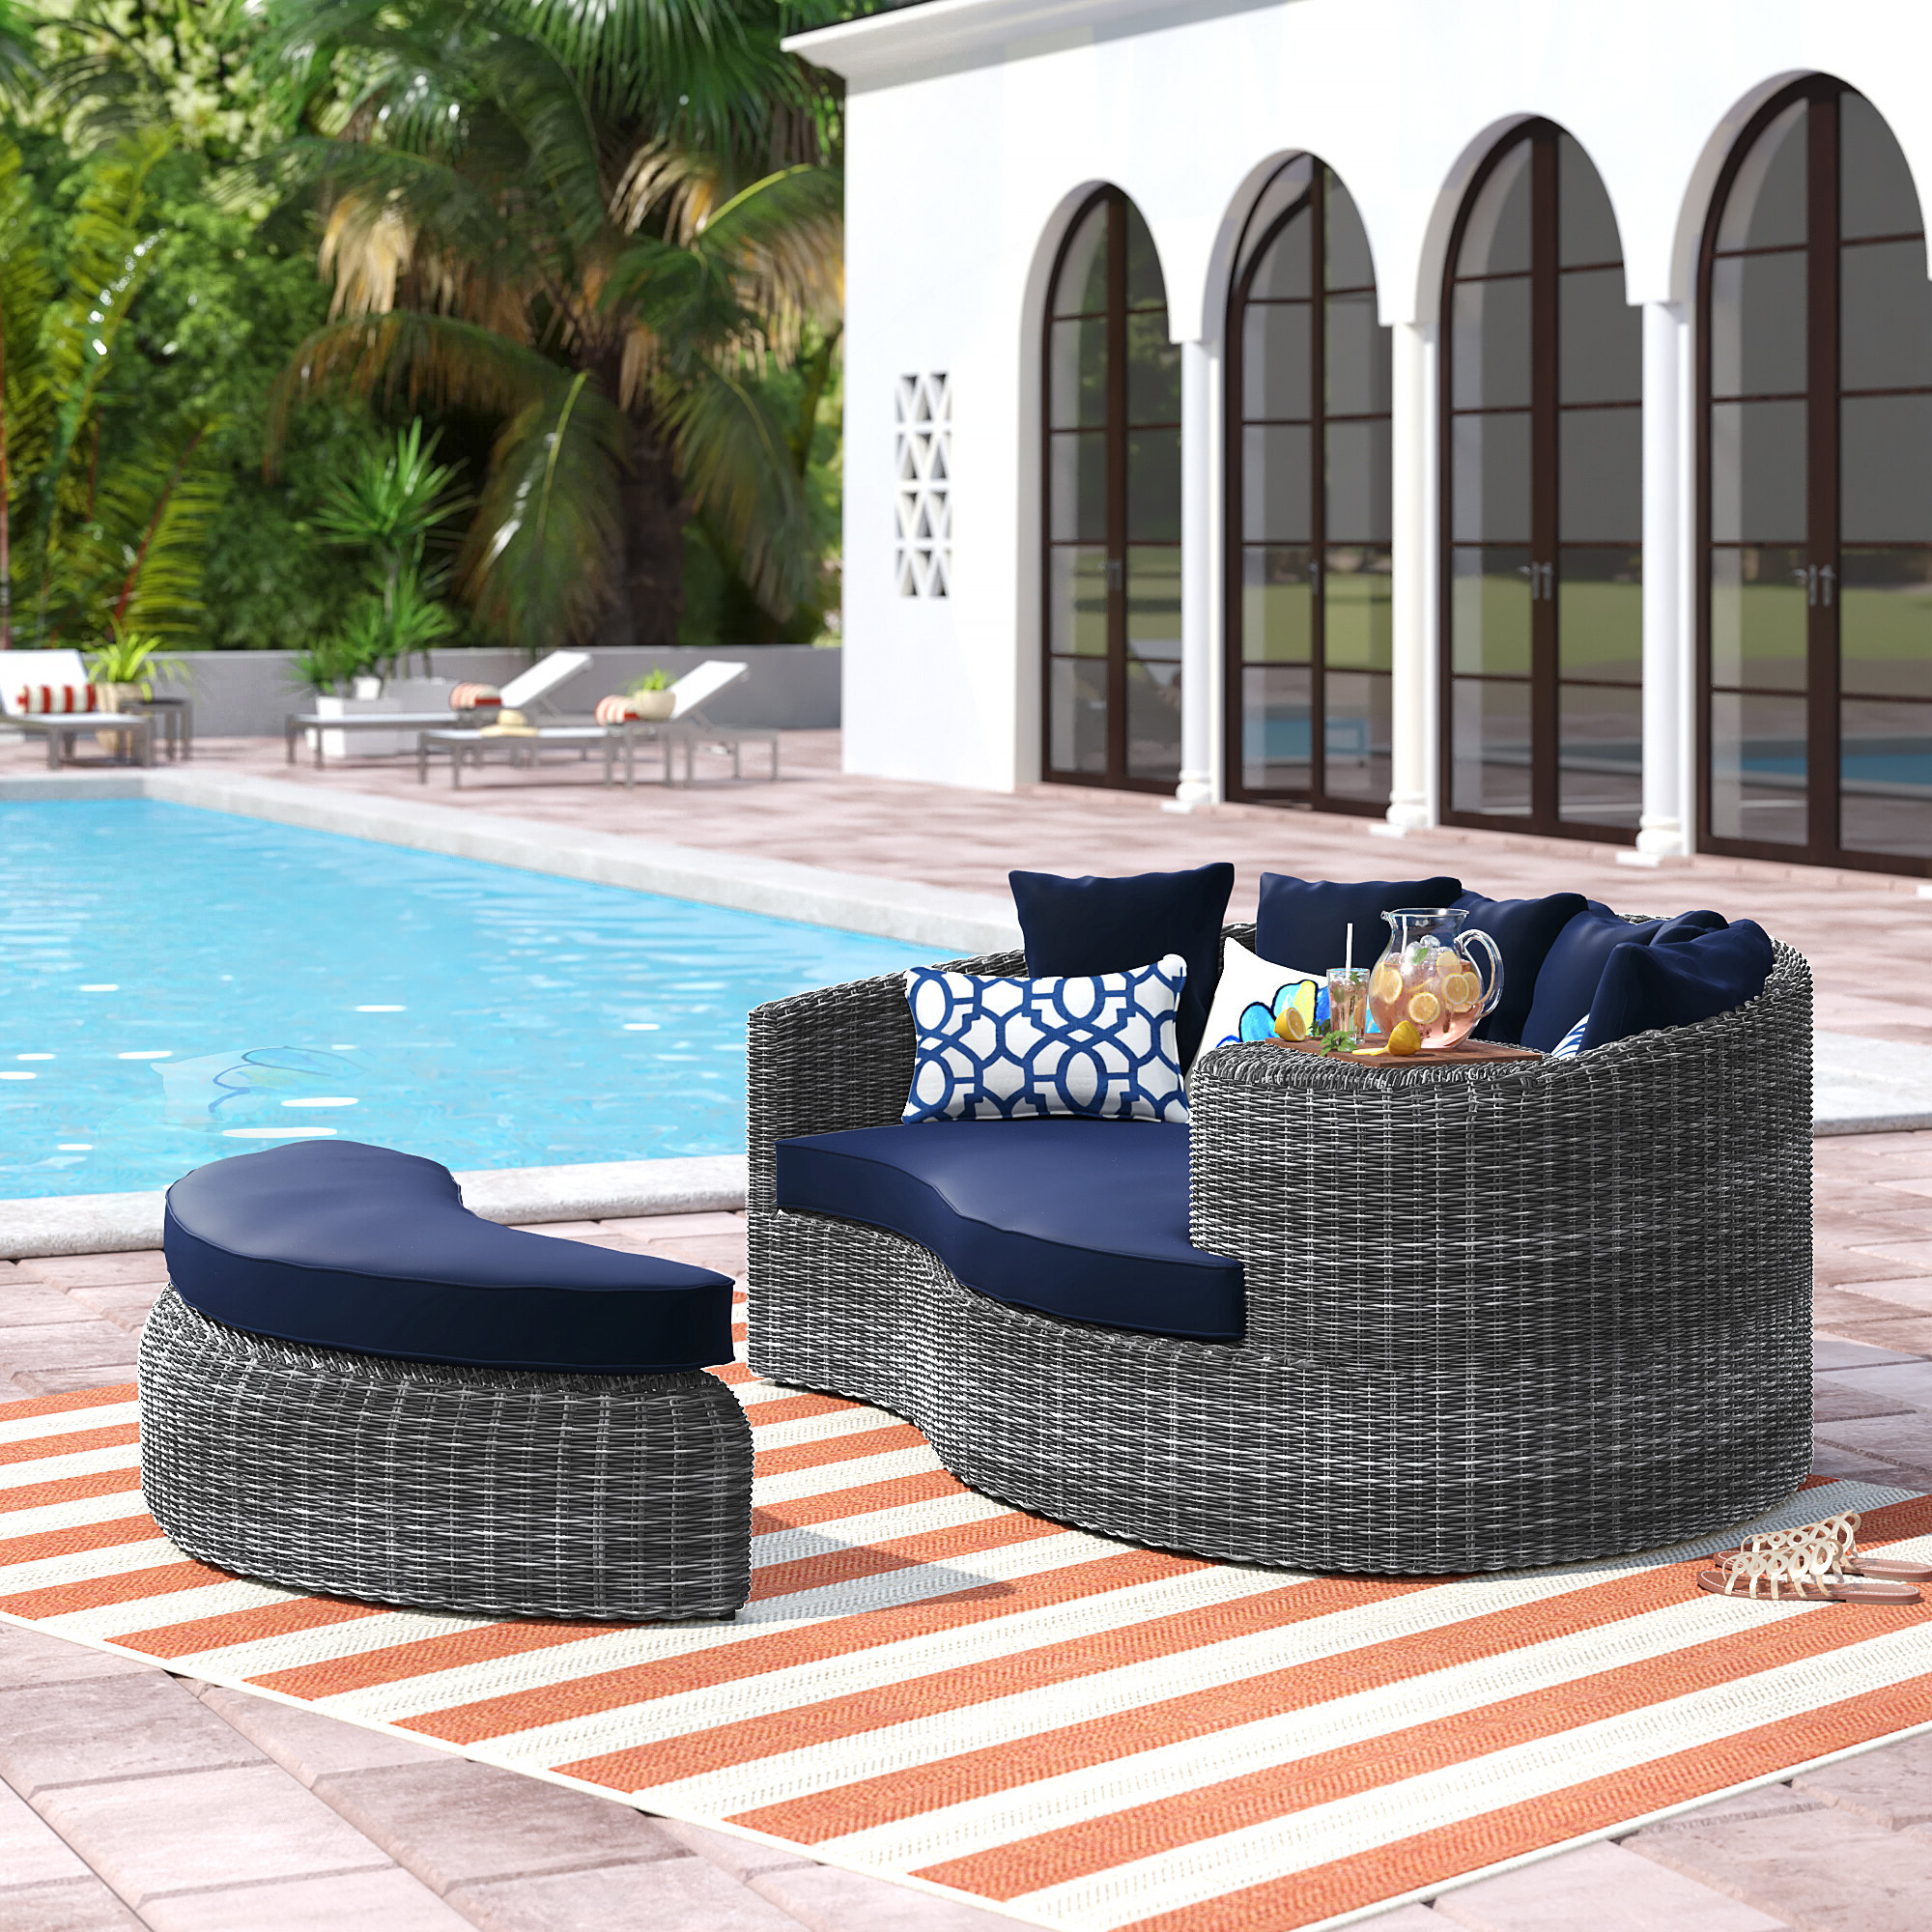 Popular Brayden Studio Keiran Patio Daybed With Cushions & Reviews With Lammers Outdoor Wicker Daybeds With Cushions (View 18 of 20)